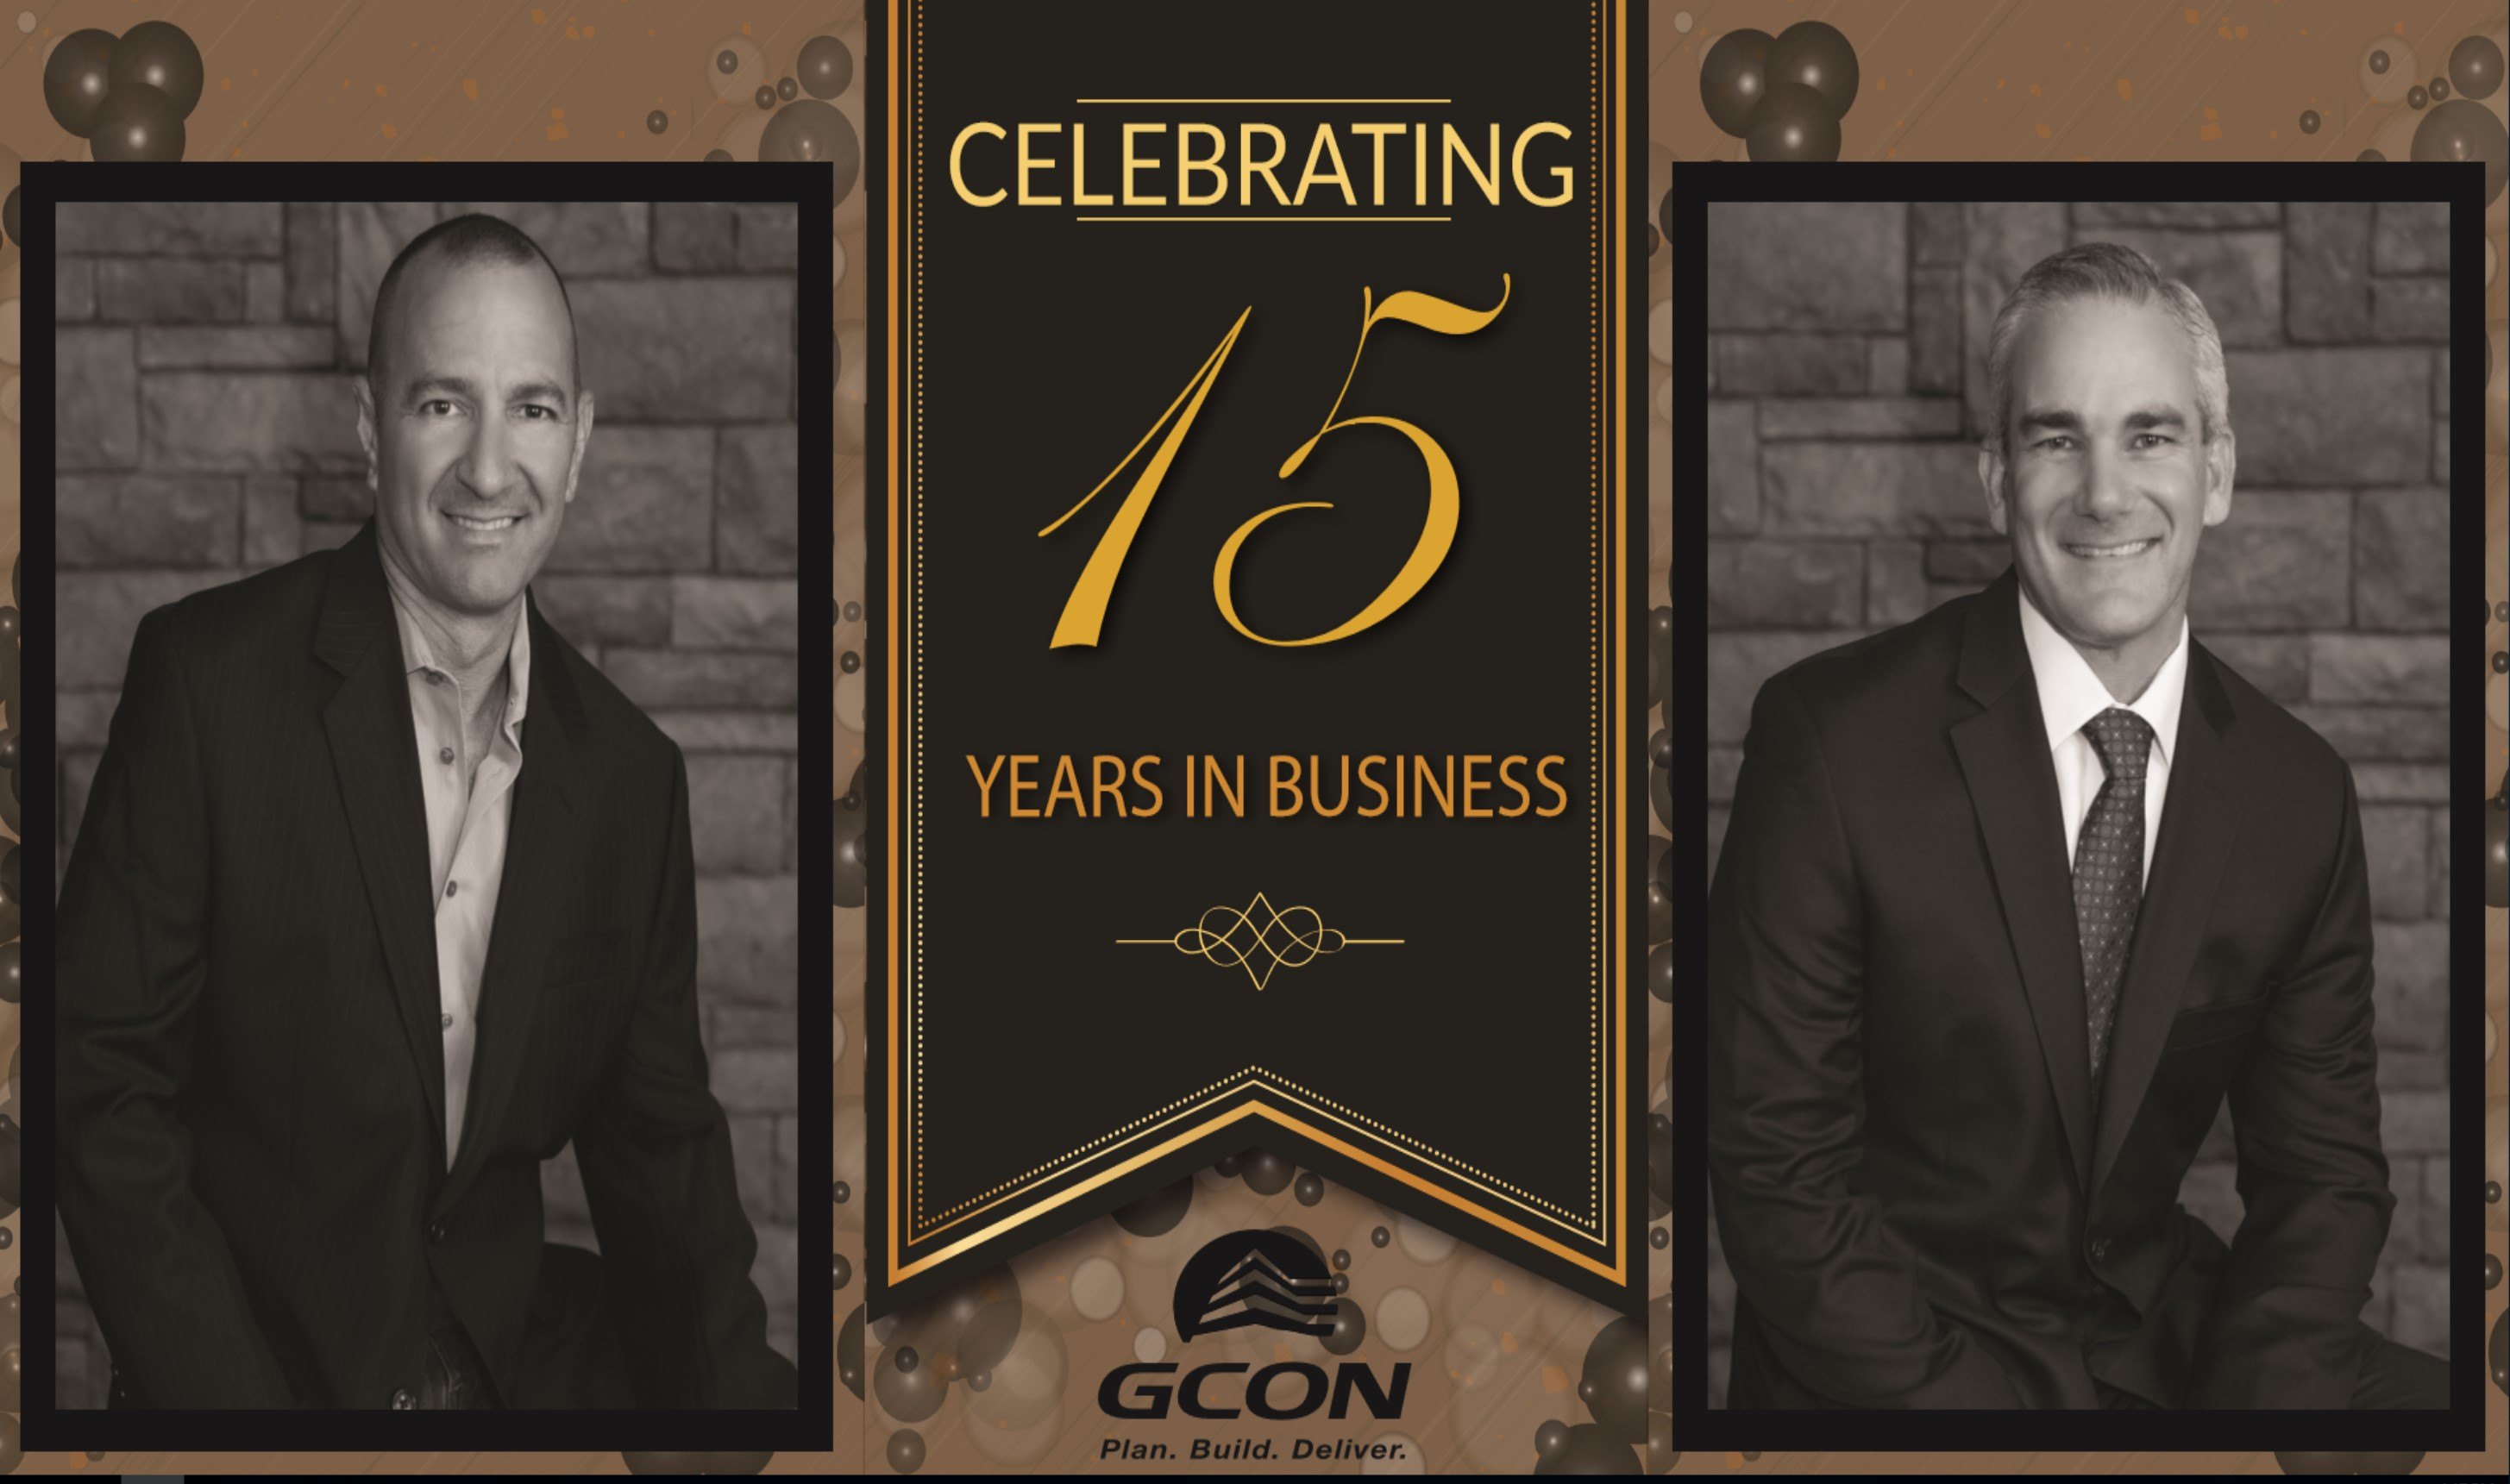 GCON celebrating 15 years